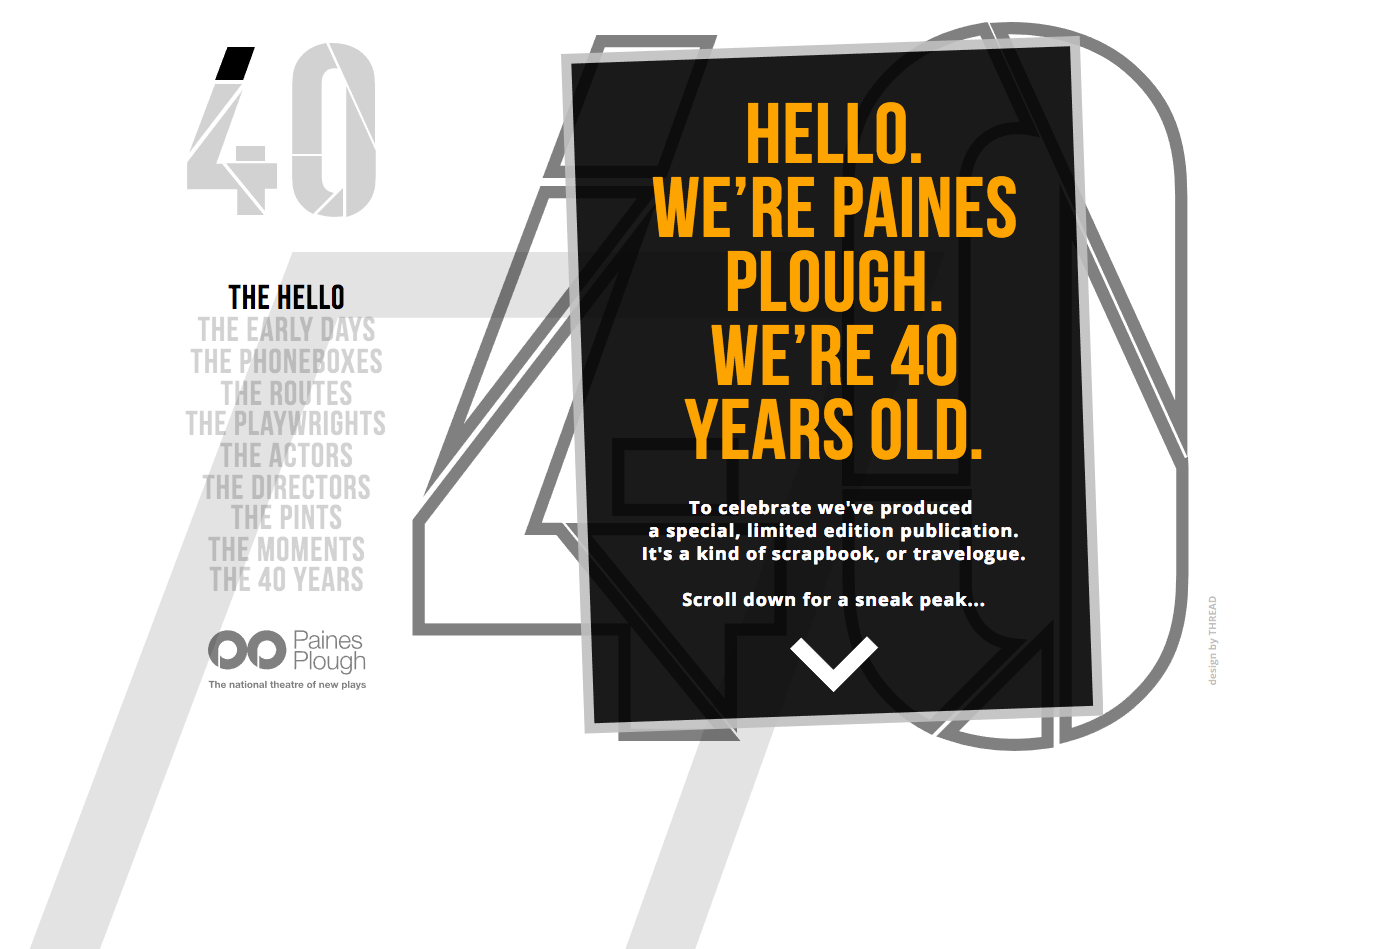 Paines Plough 40 - website design